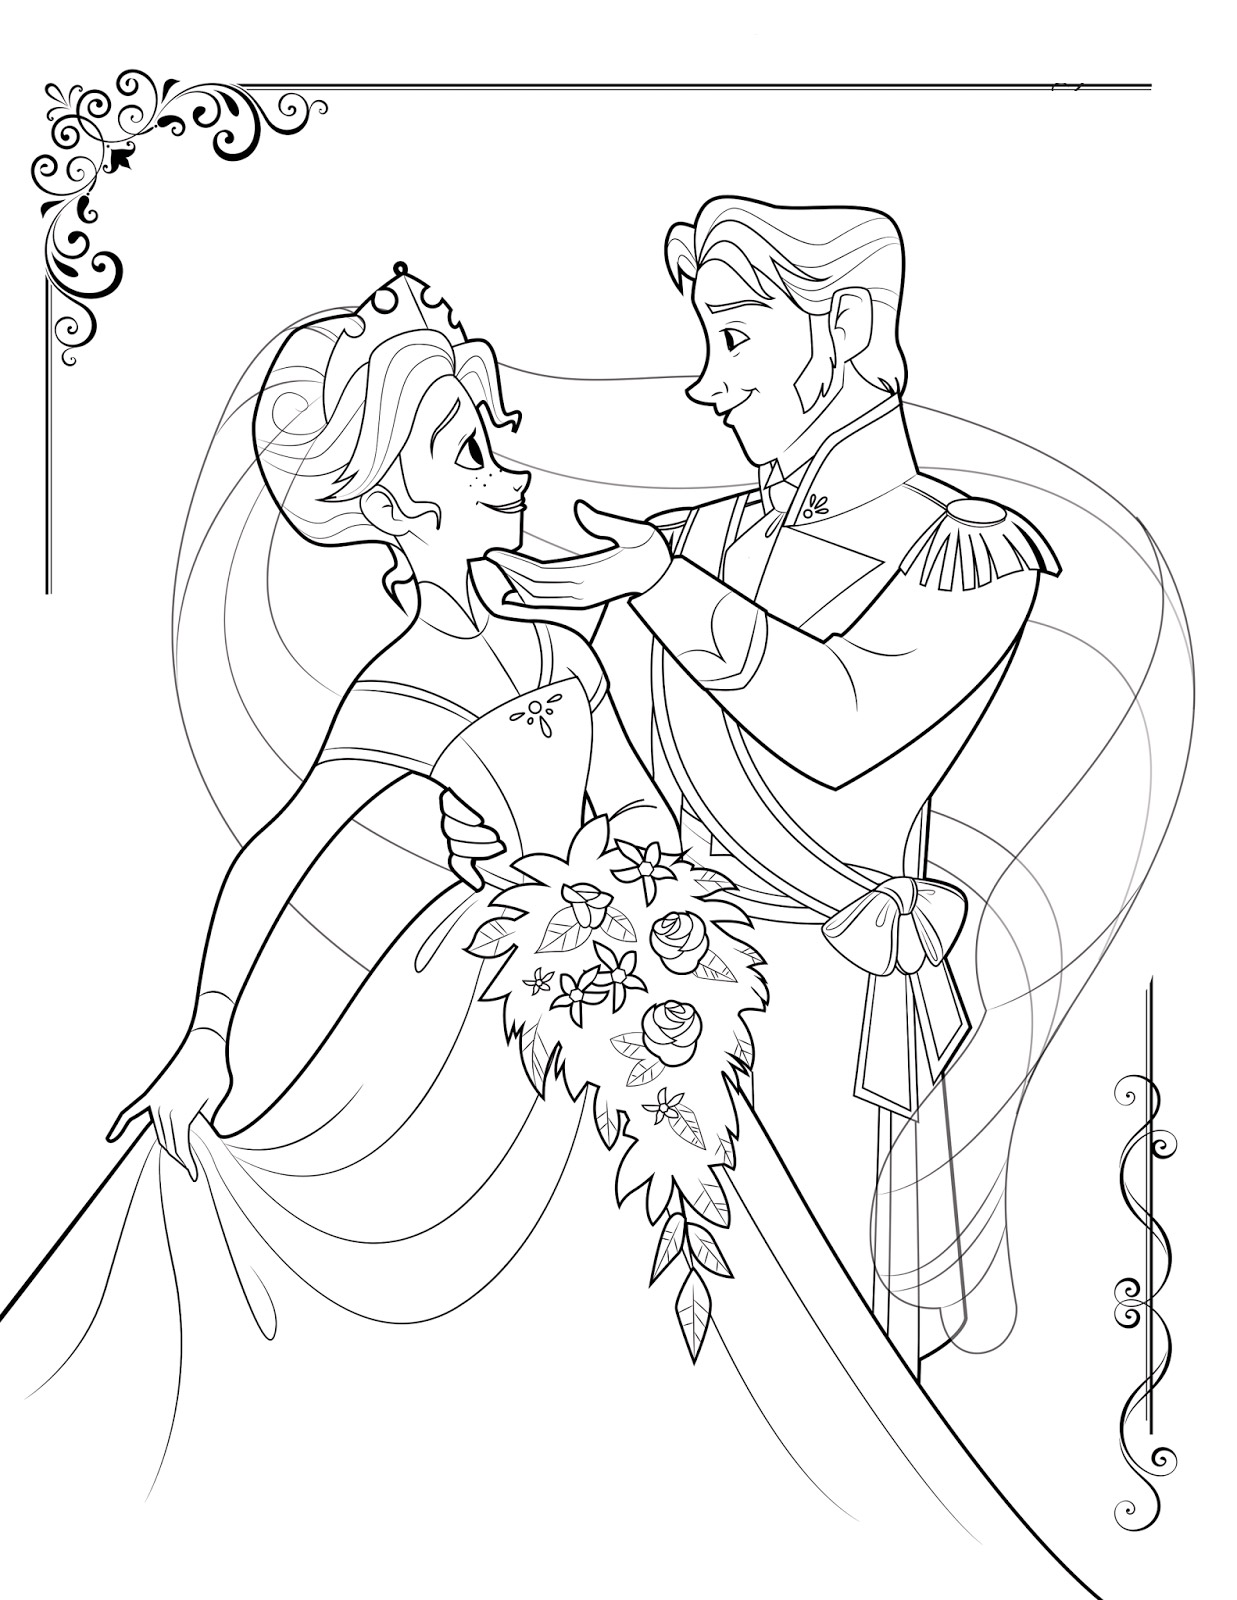 Frozen to color for children - Frozen Kids Coloring Pages